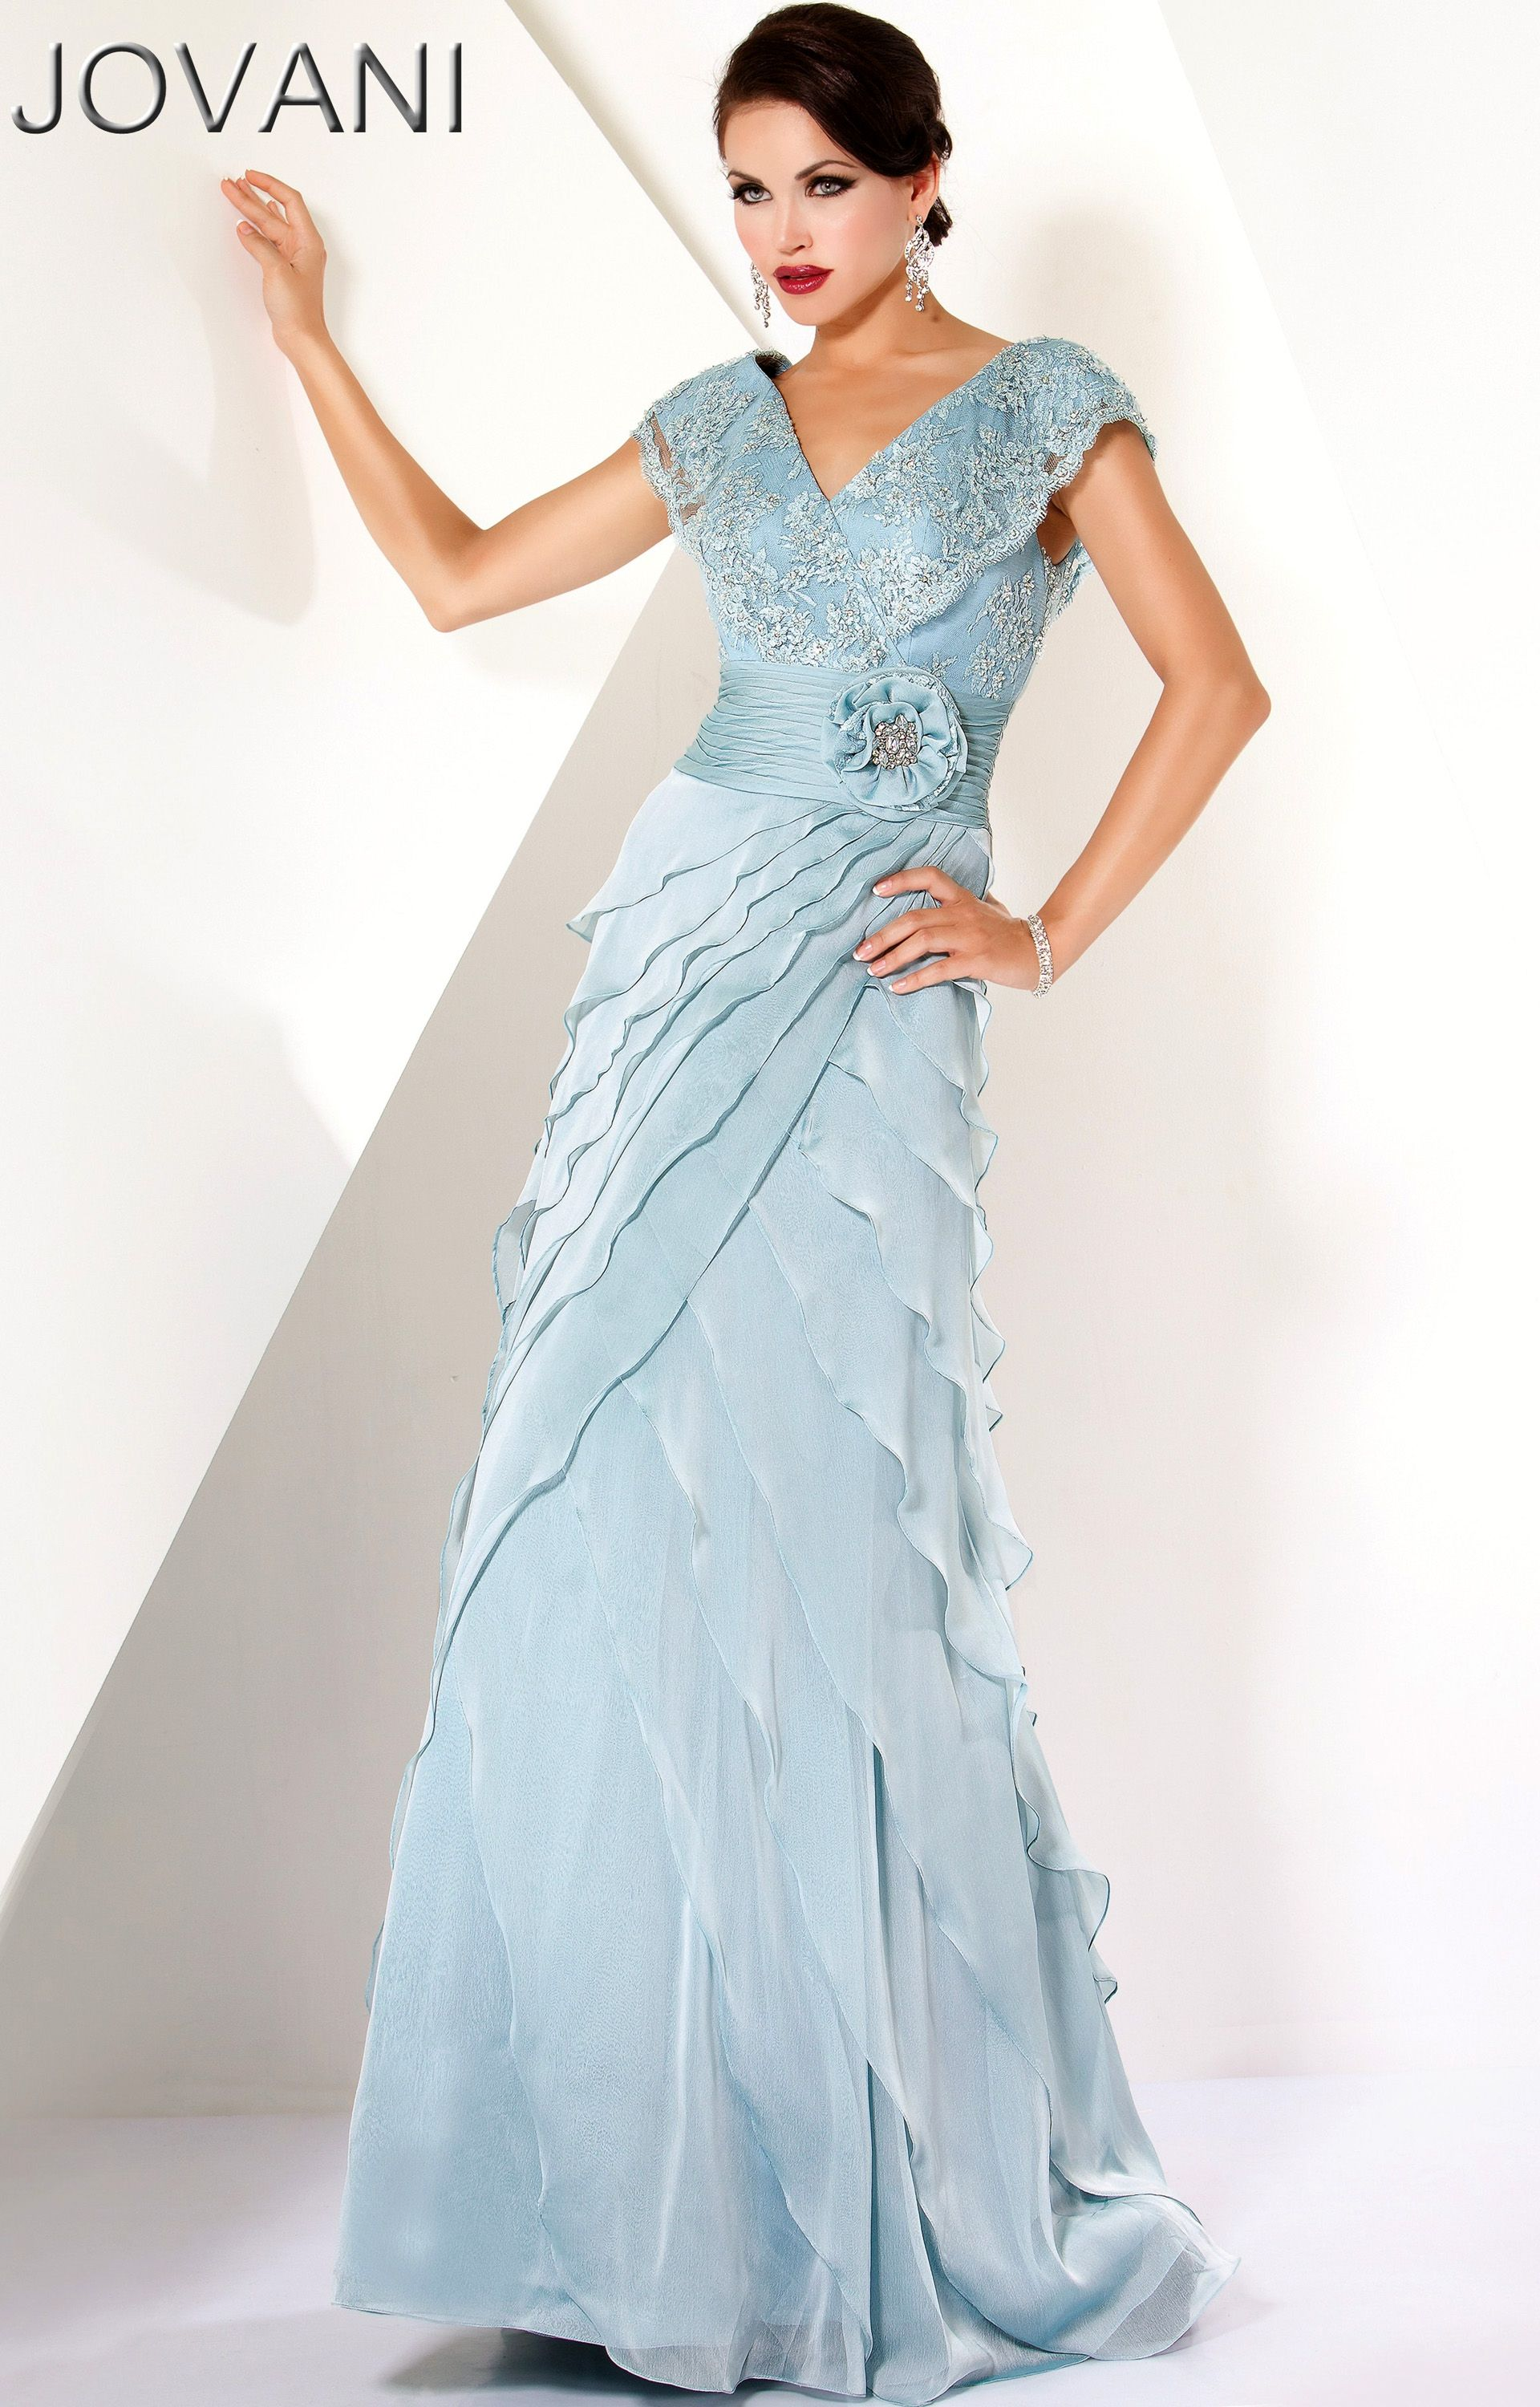 Ernest\'s Couture - Jovani | Jovani Prom at Ernest\'s Couture ...